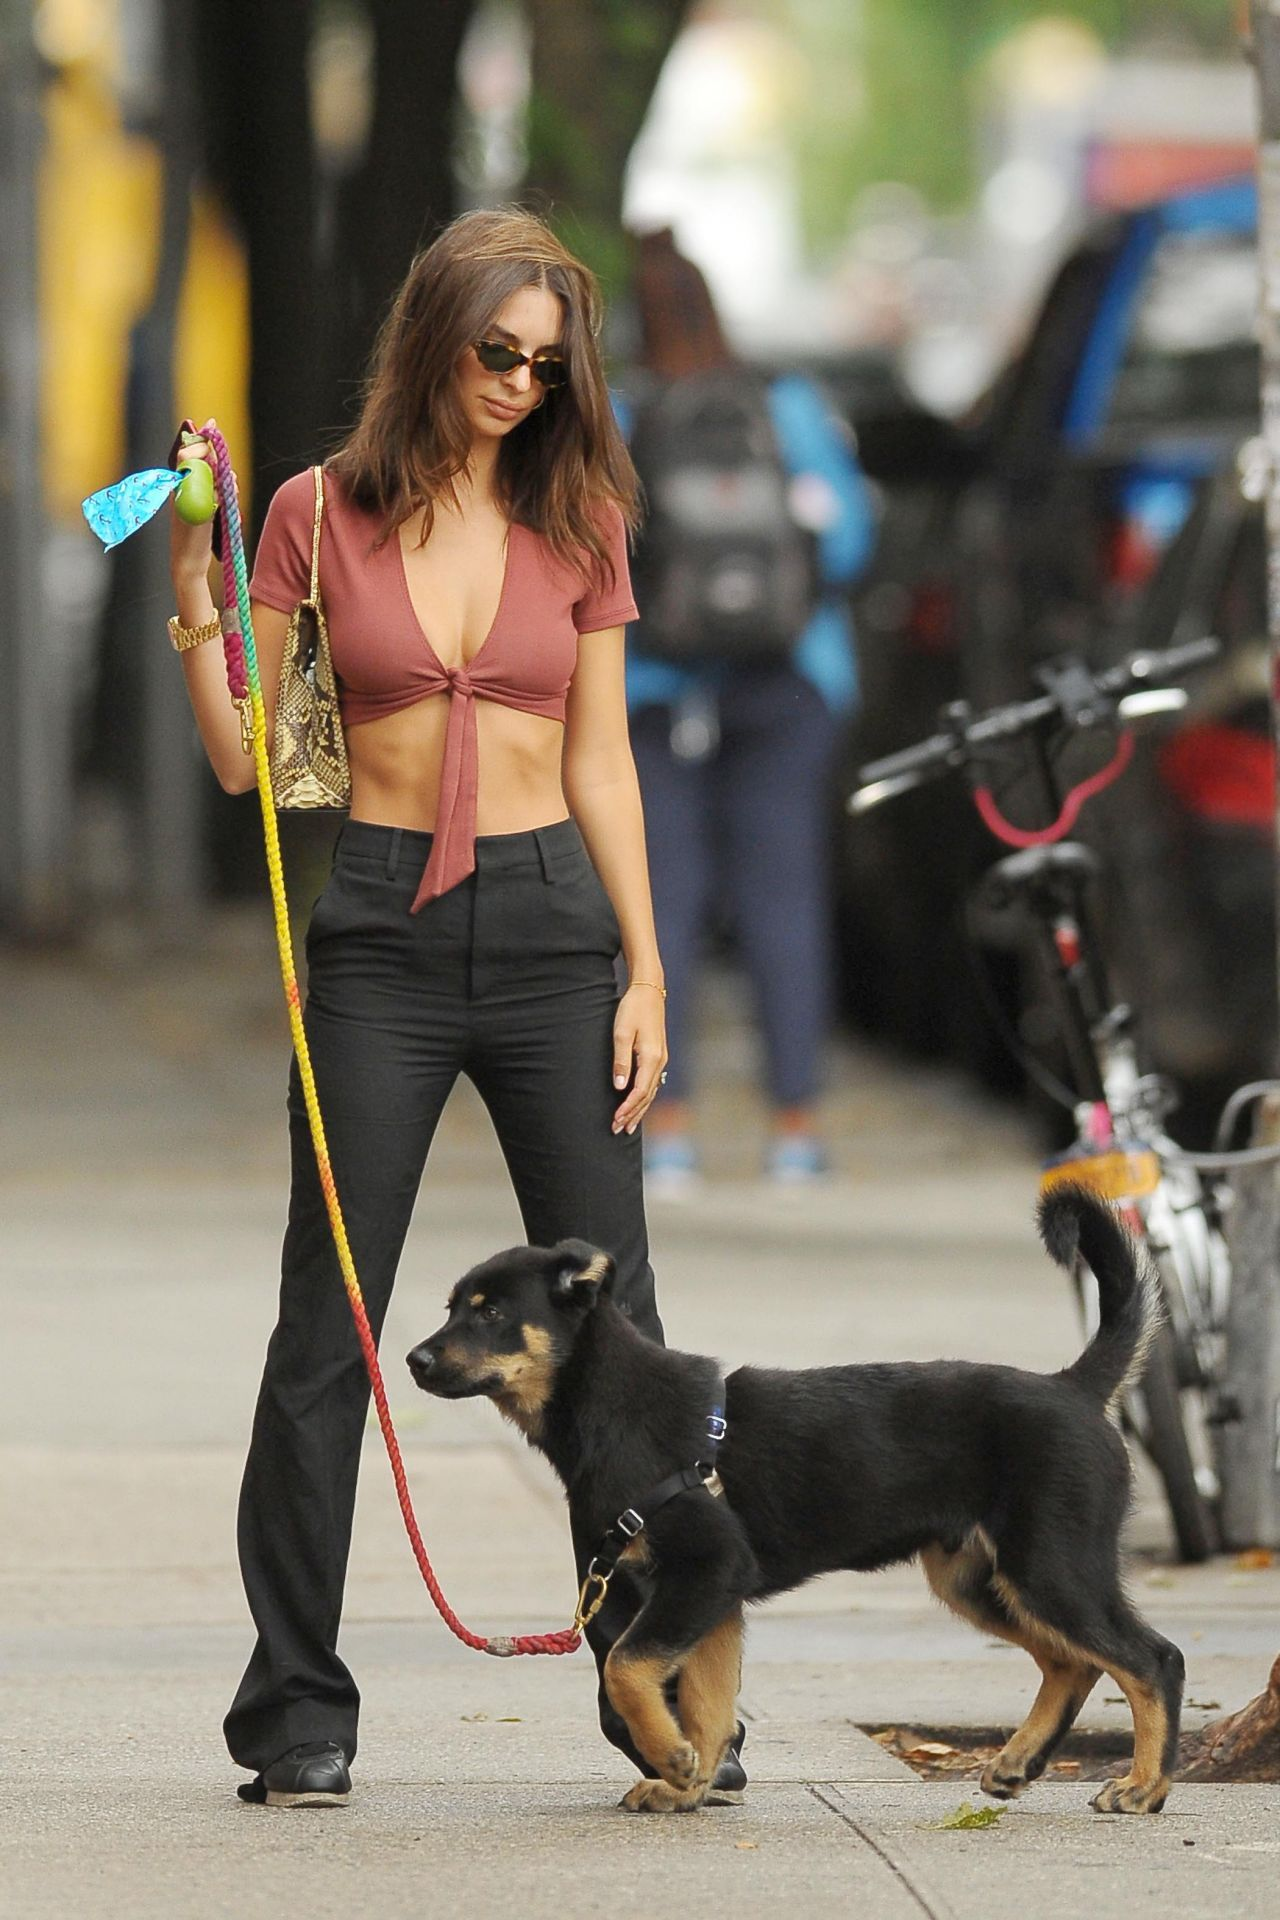 abs hollywoods stroll - HD1280×1920